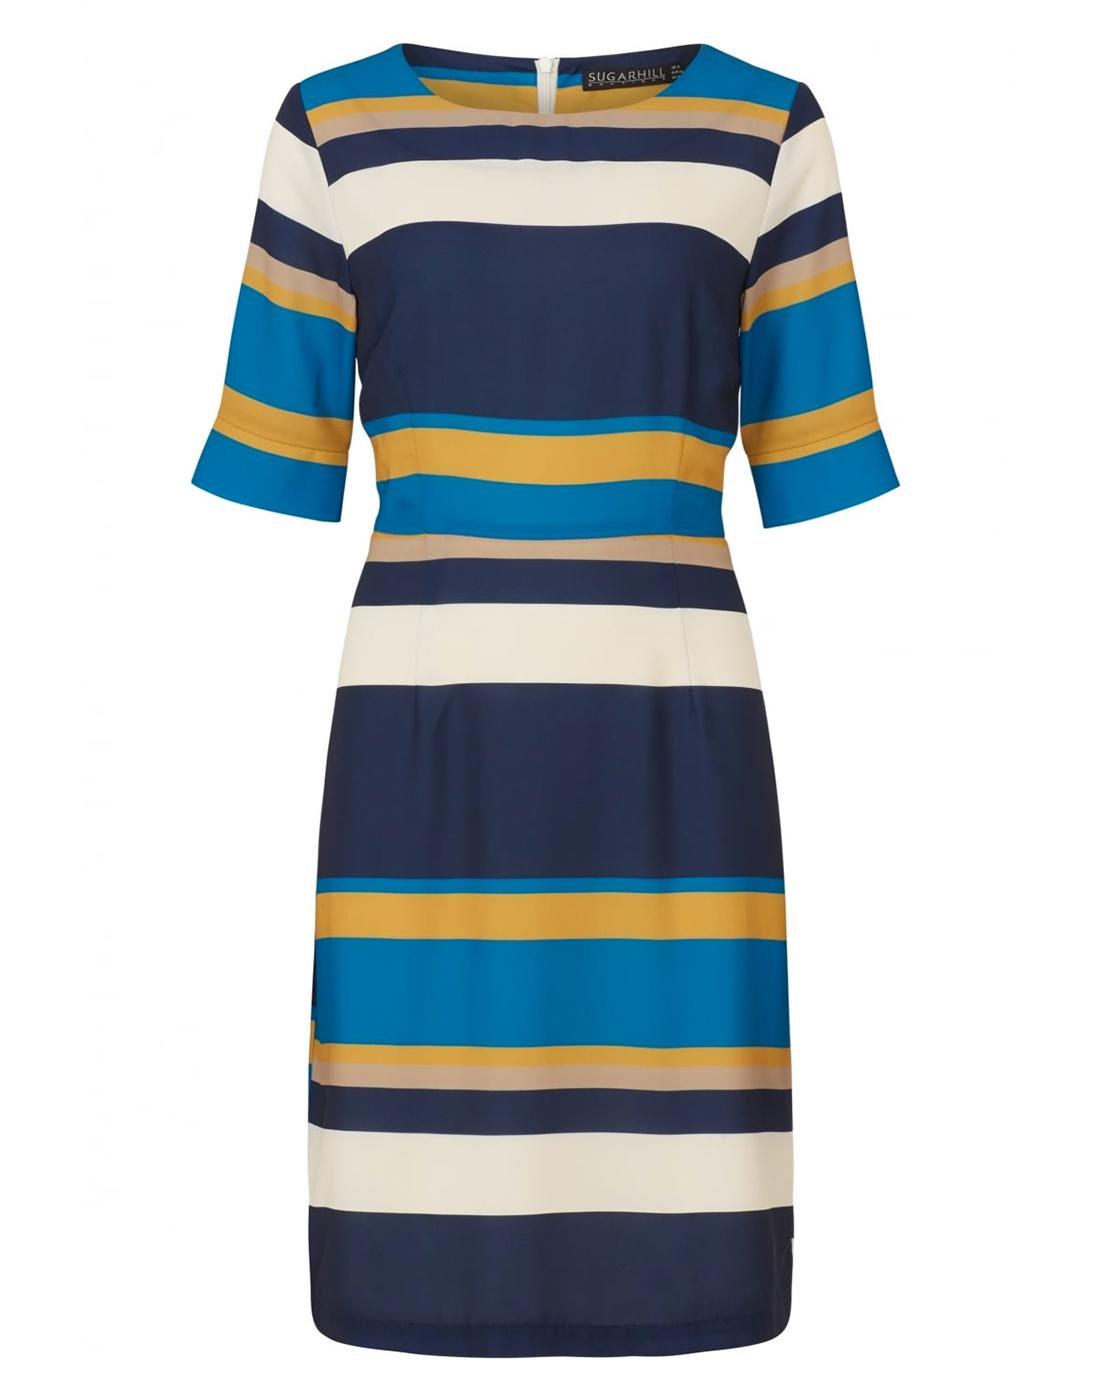 Harper SUGARHILL BOUTIQUE Retro Striped Dress